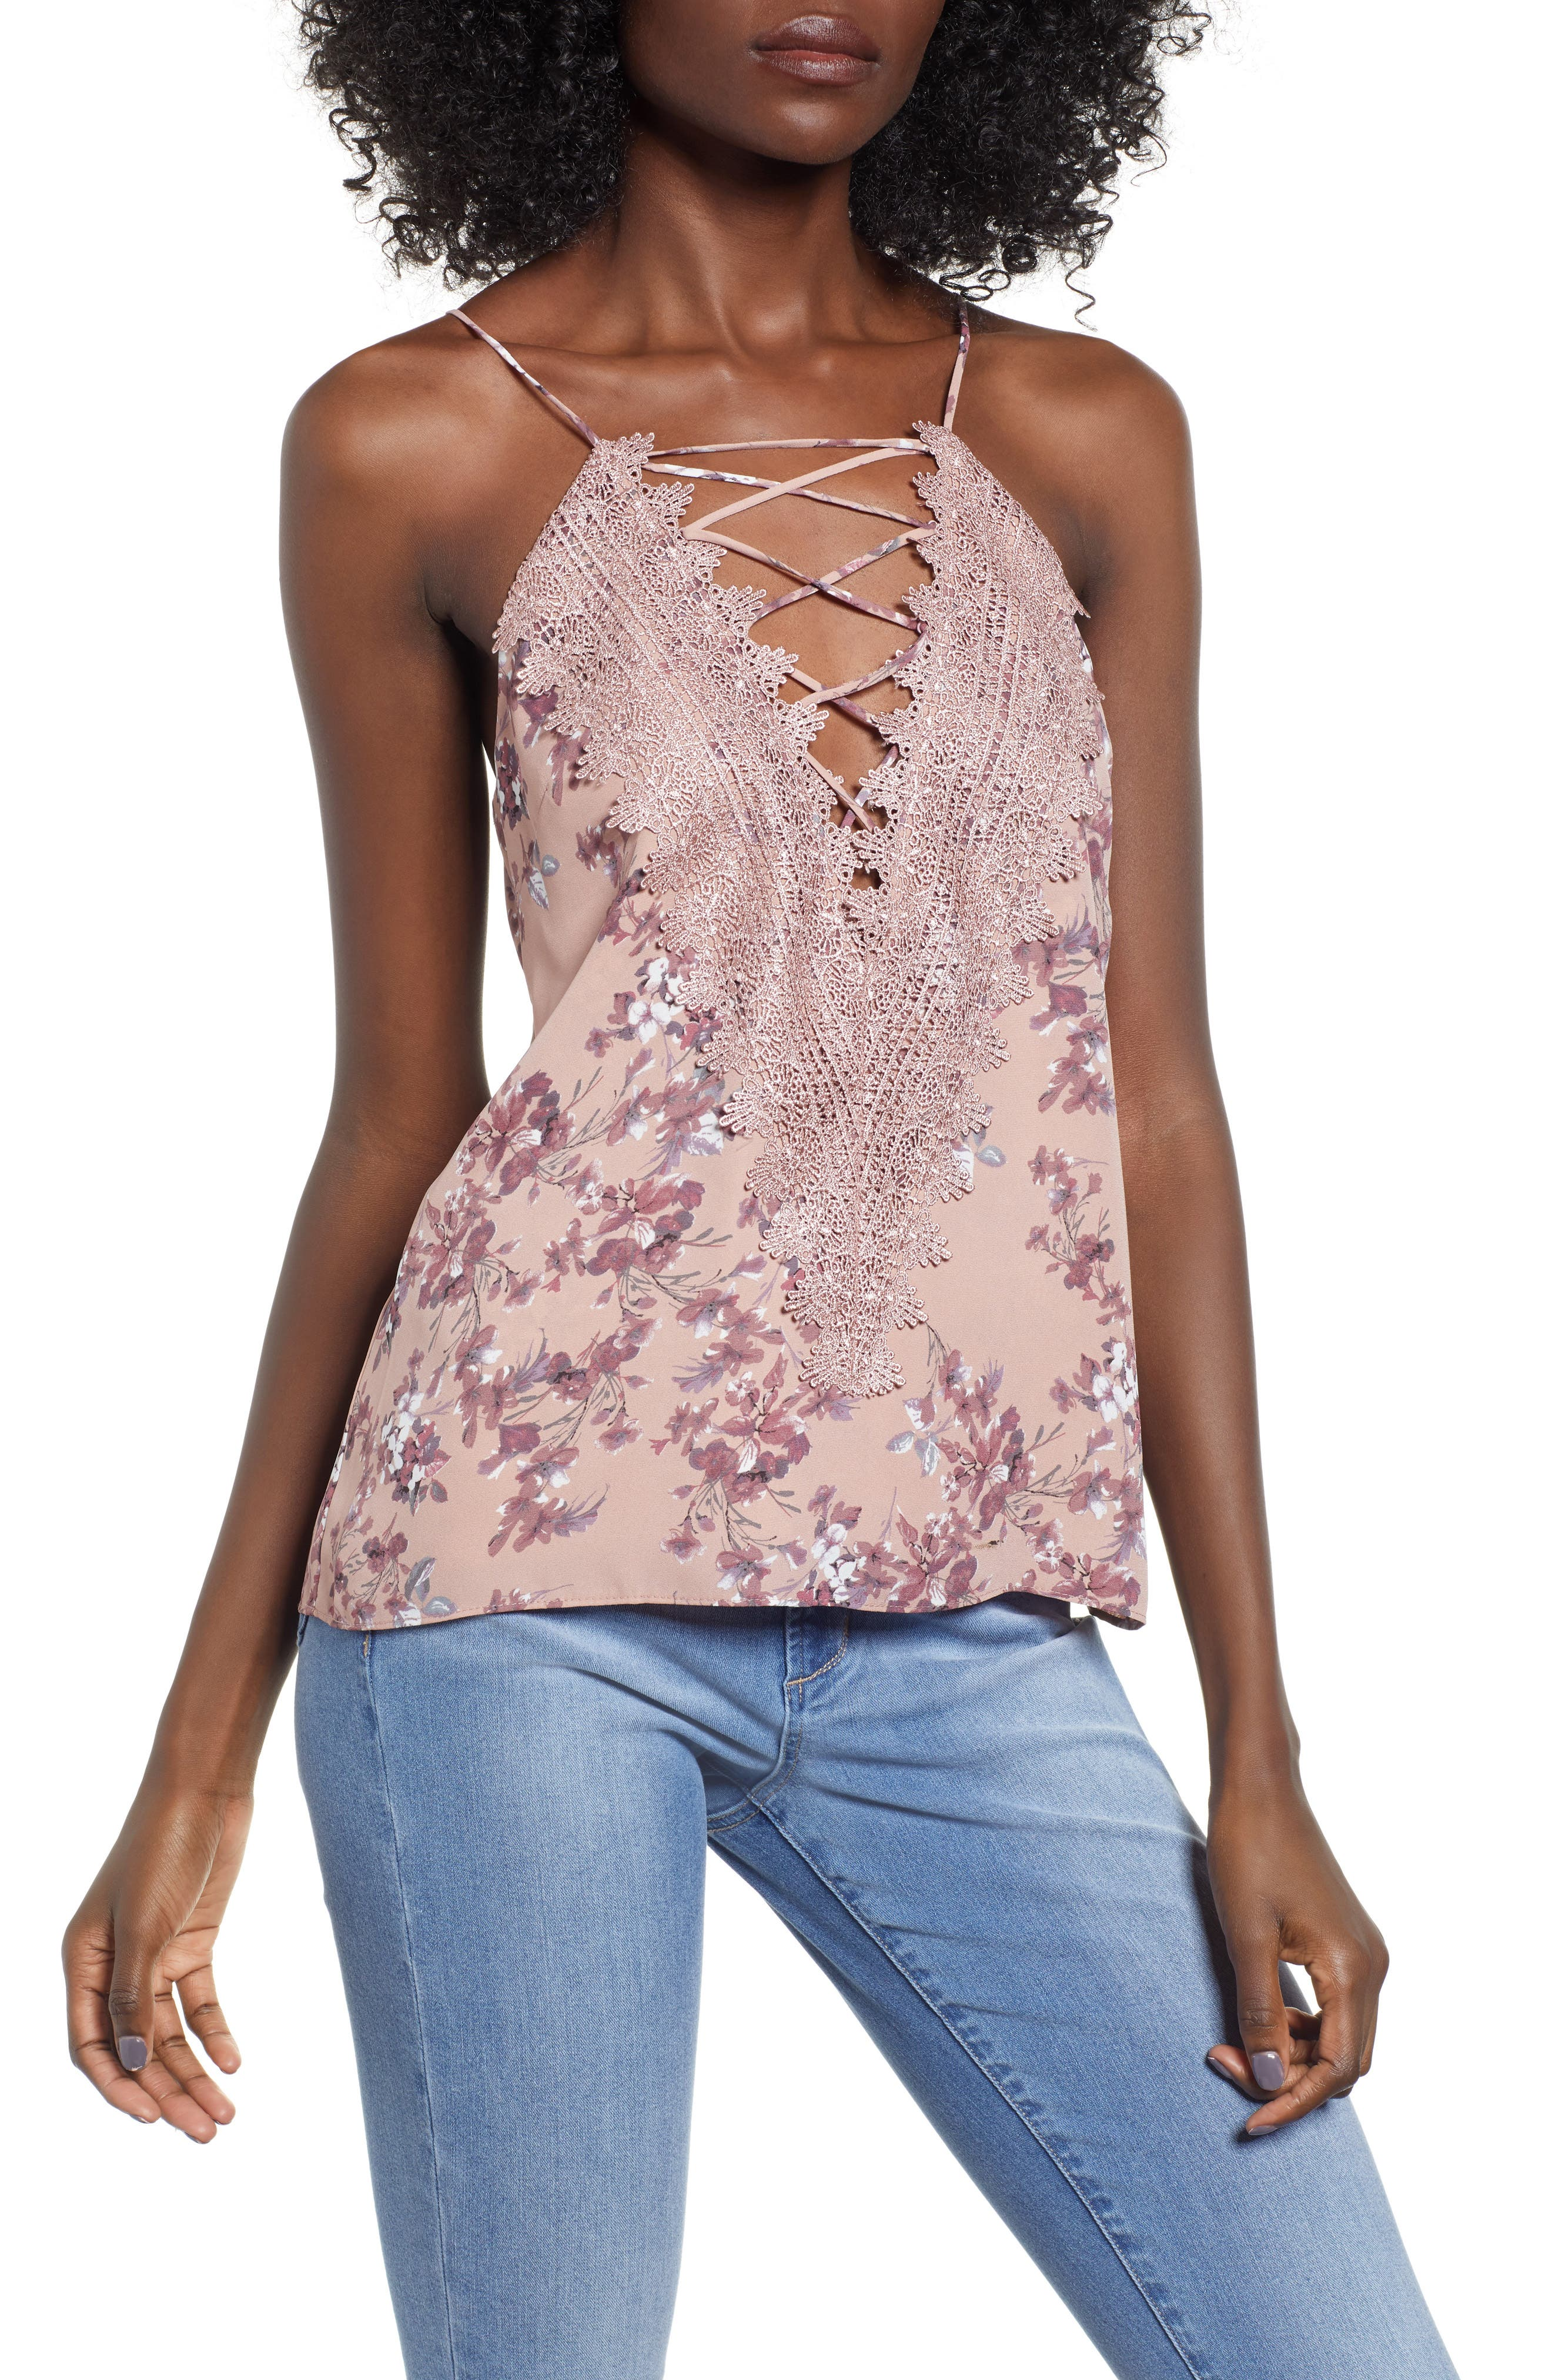 WAYF Posie Strappy Camisole in Dusty Mauve Floral